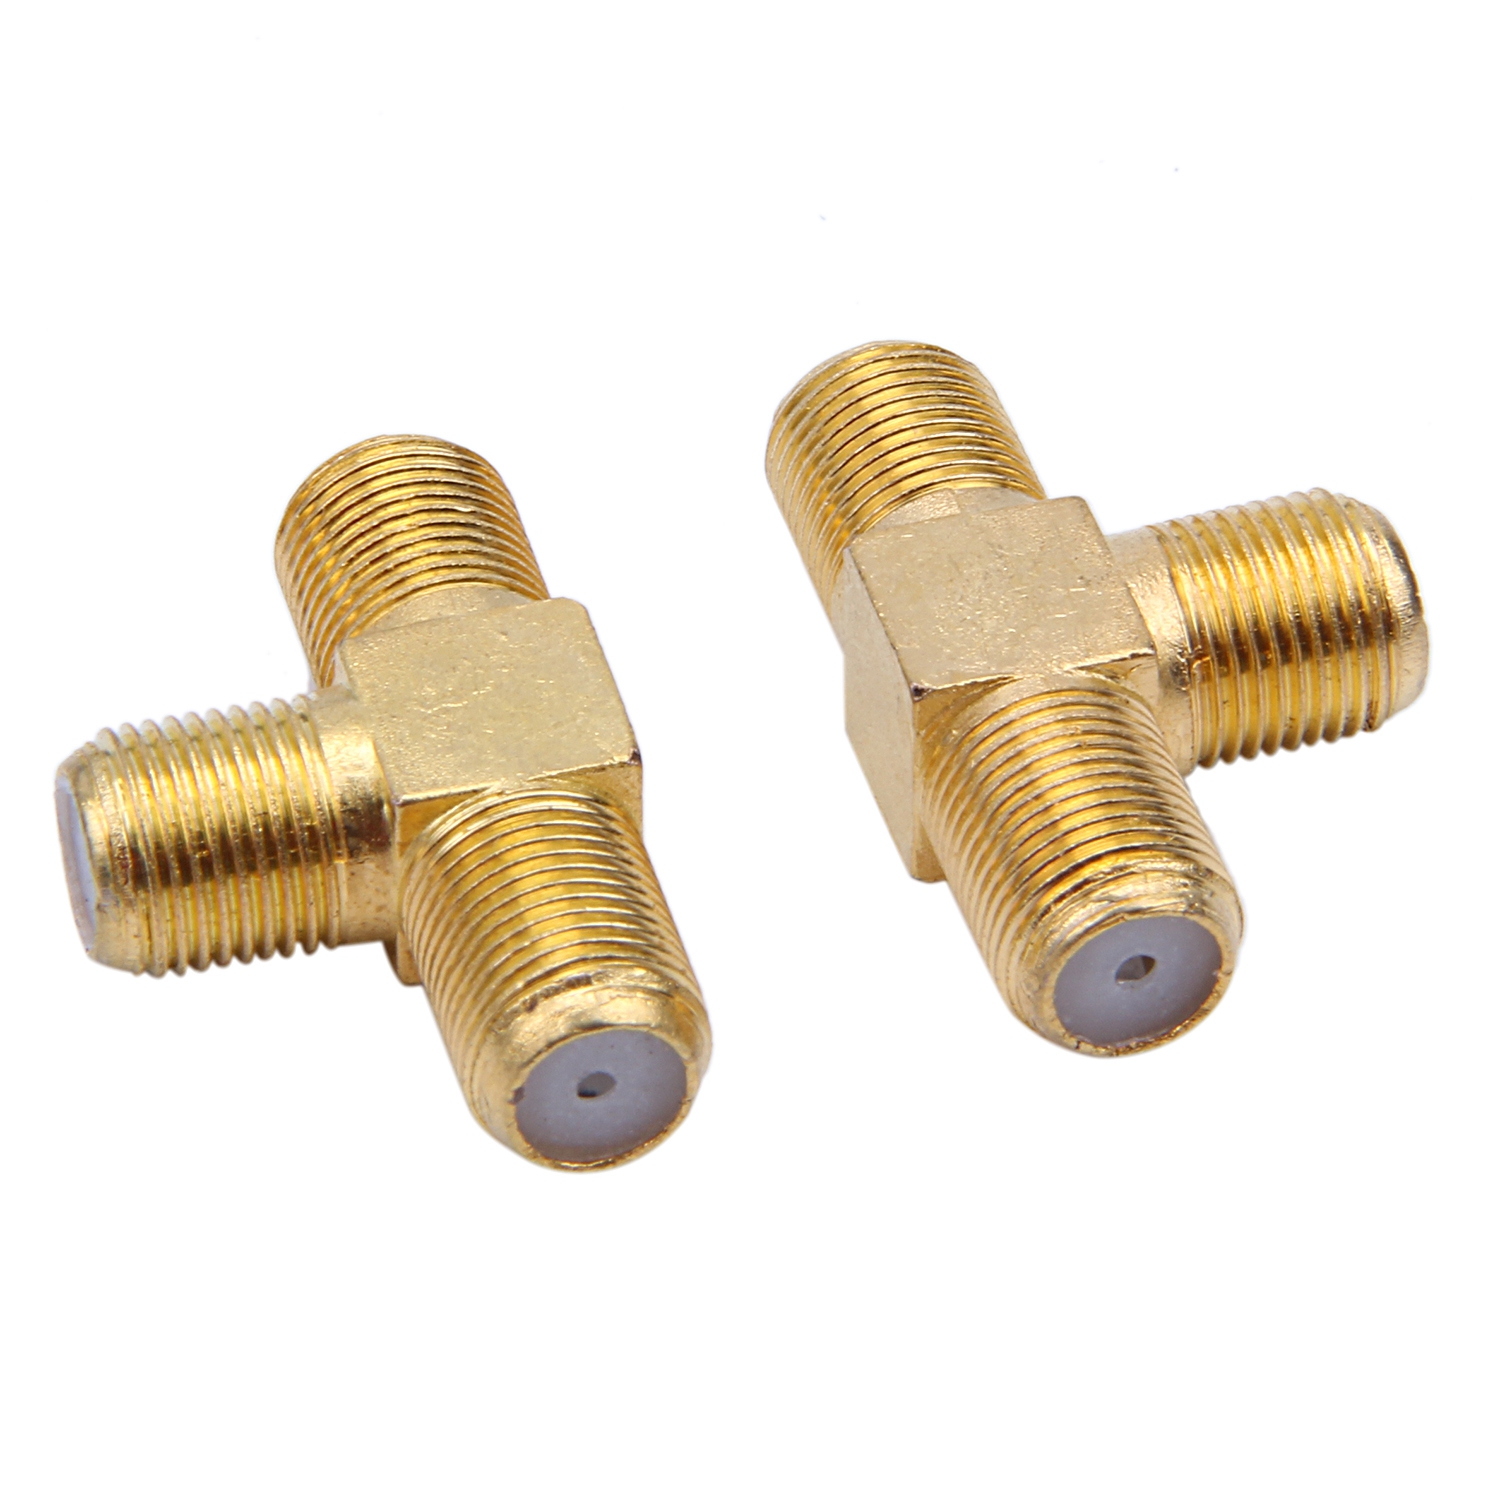 SODIAL(R) 2pcs F Female To Two F Female Jack Triple T RF Adapter Connector 3 Way Splitter